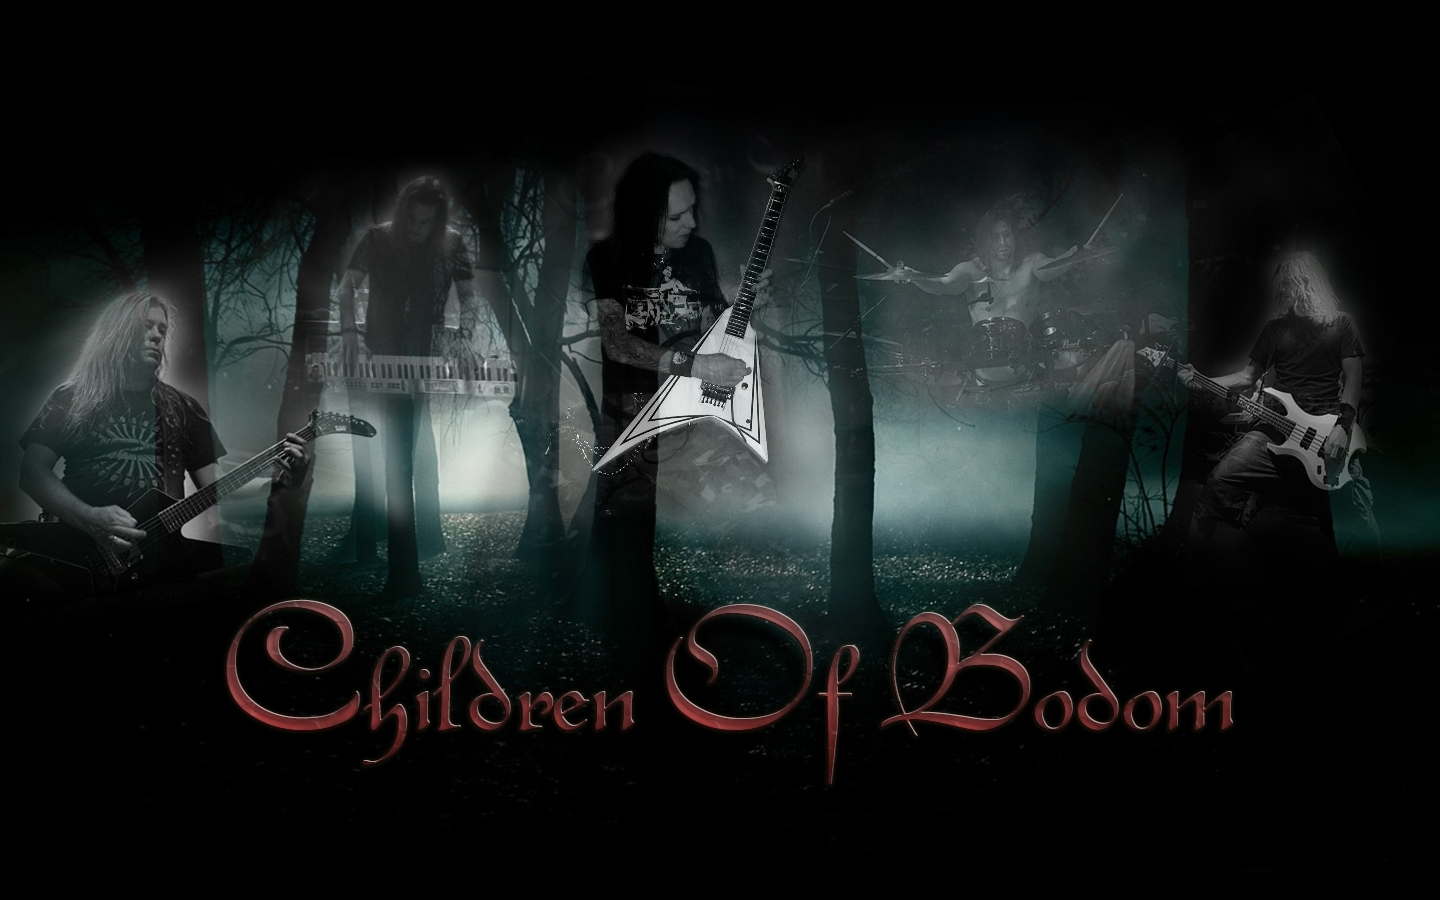 52 children of bodom hd wallpapers | background images - wallpaper